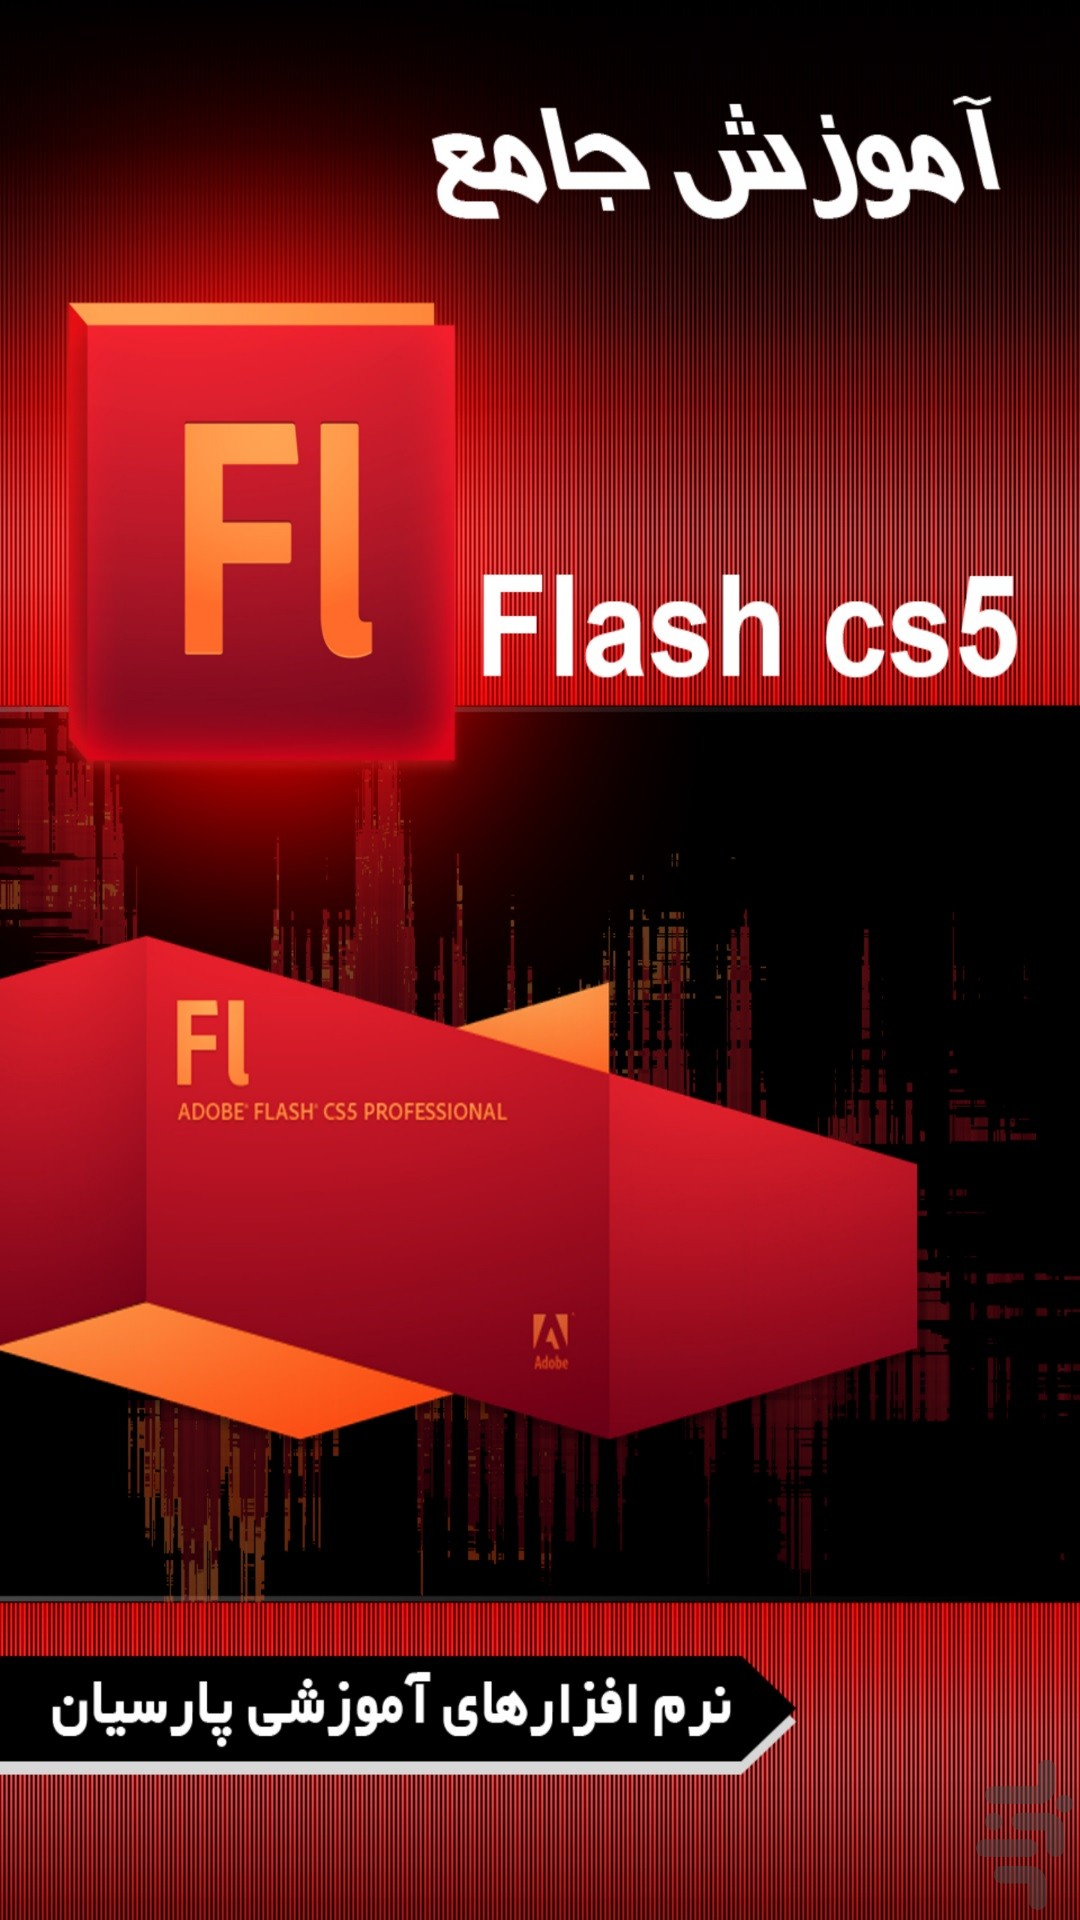 آموزش جامع Adobe Flash (فیلم)